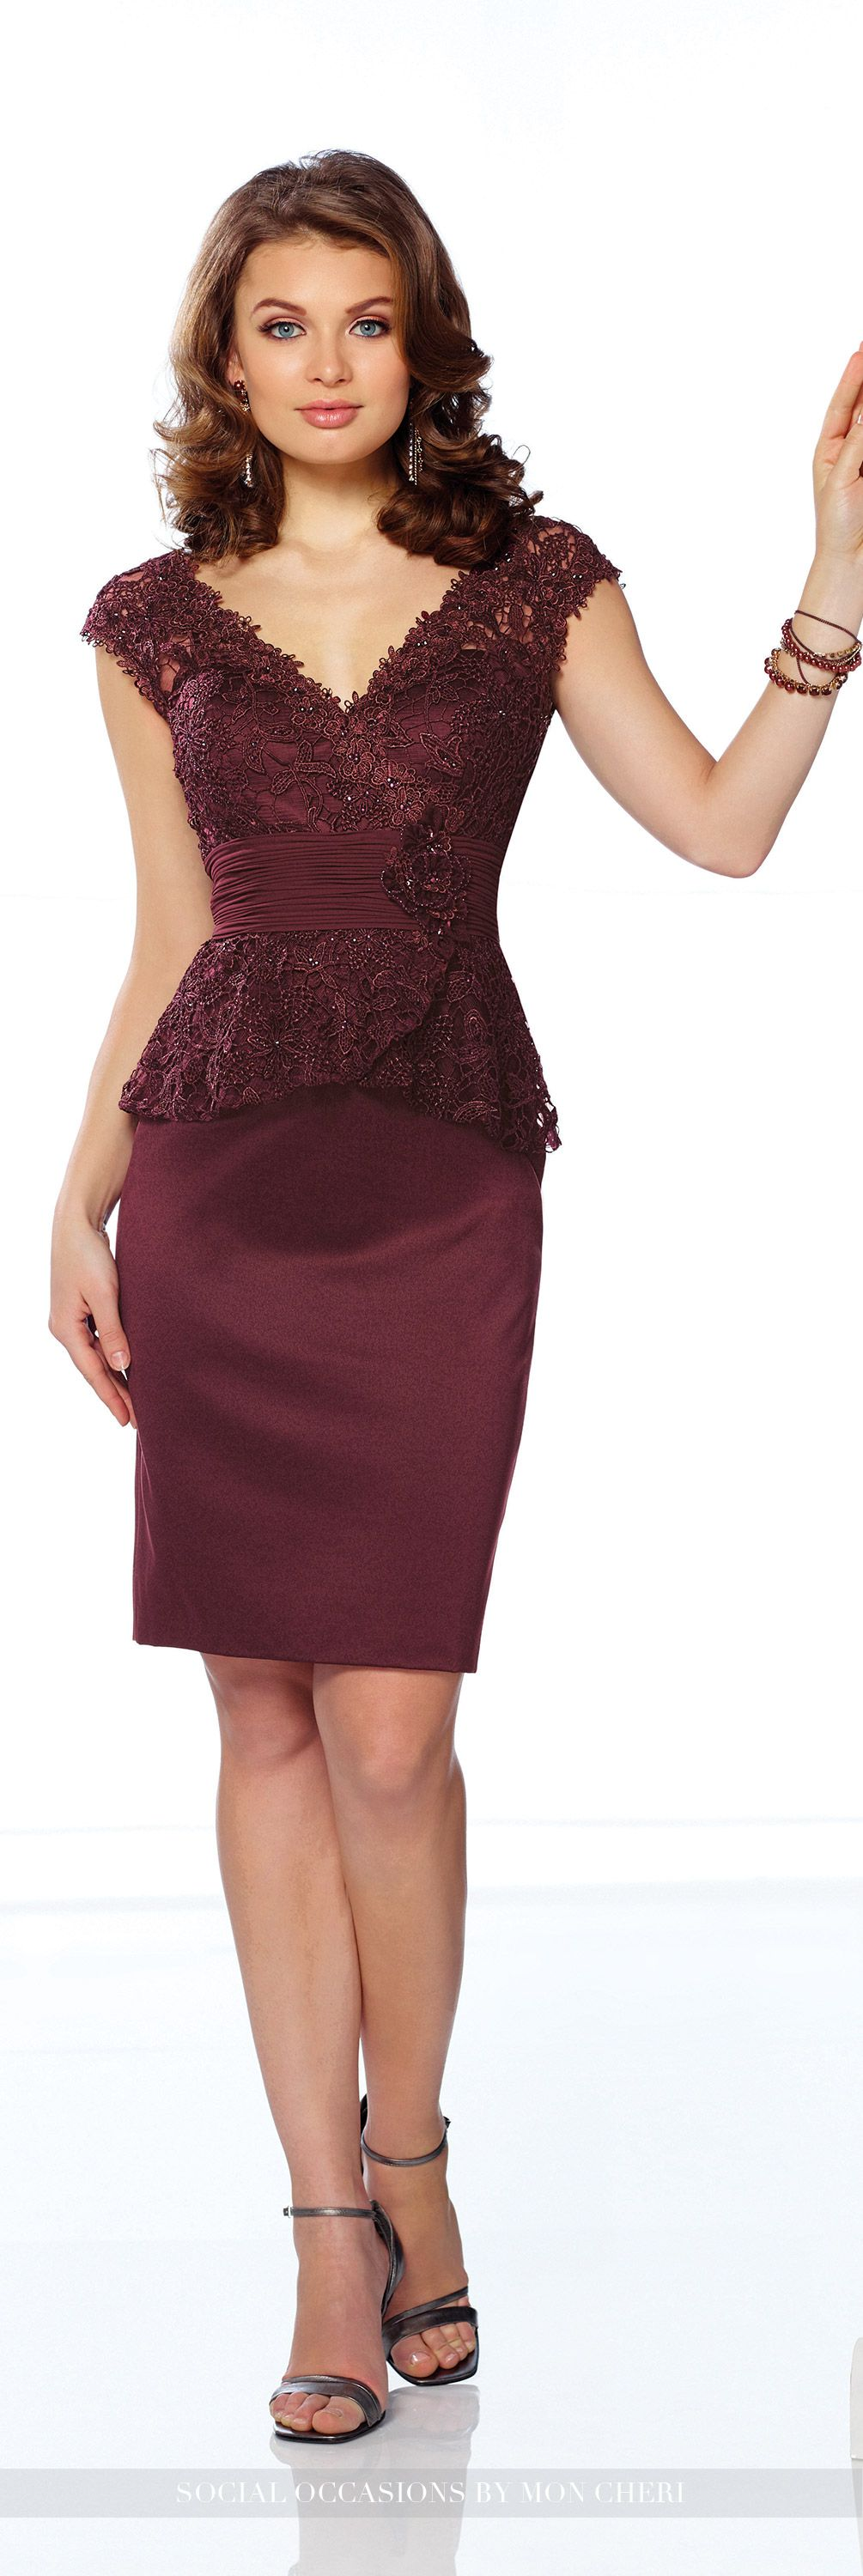 Wedding guest dresses satin skirt lace peplum and bodice